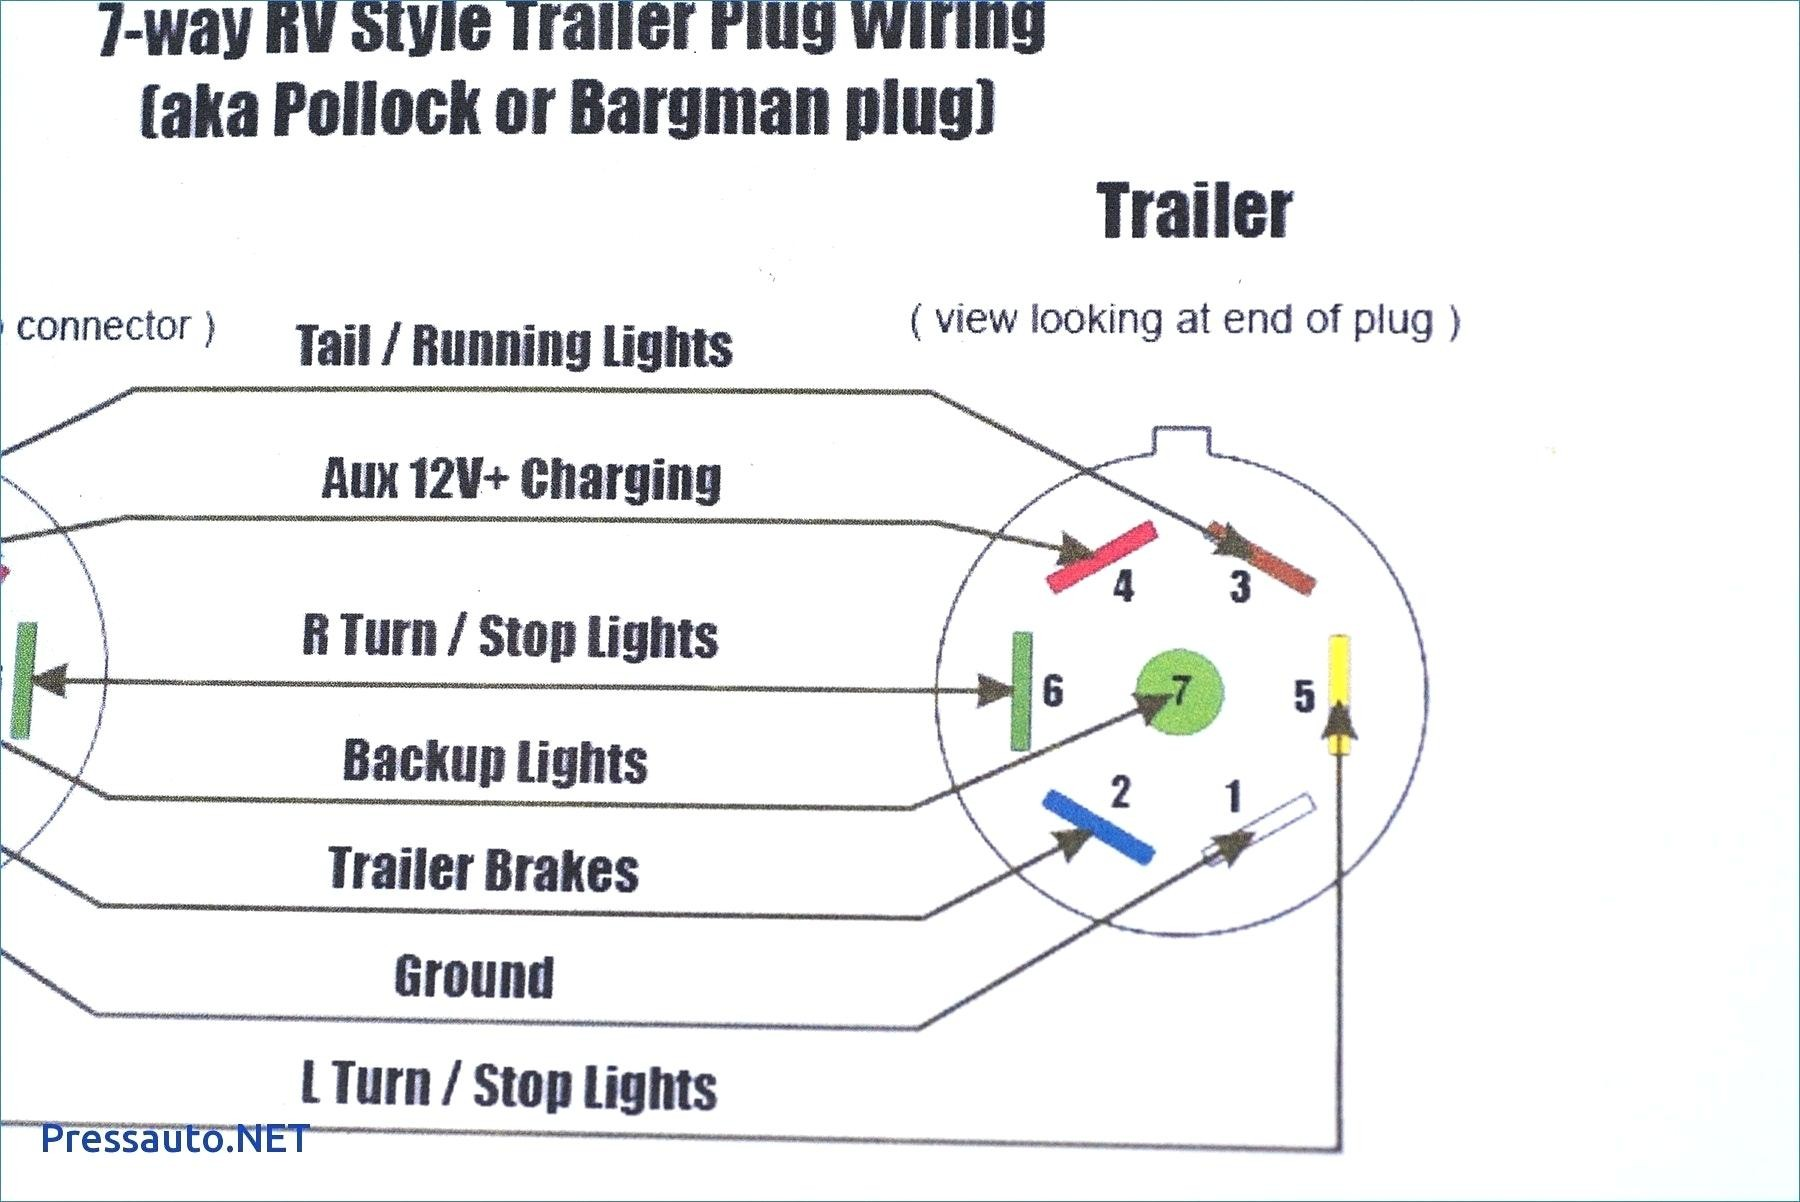 abu trailer wiring diagrams trailer wiring diagrams 2001 gmc truck 7 pin trailer connector wiring diagram awesome wiring #4